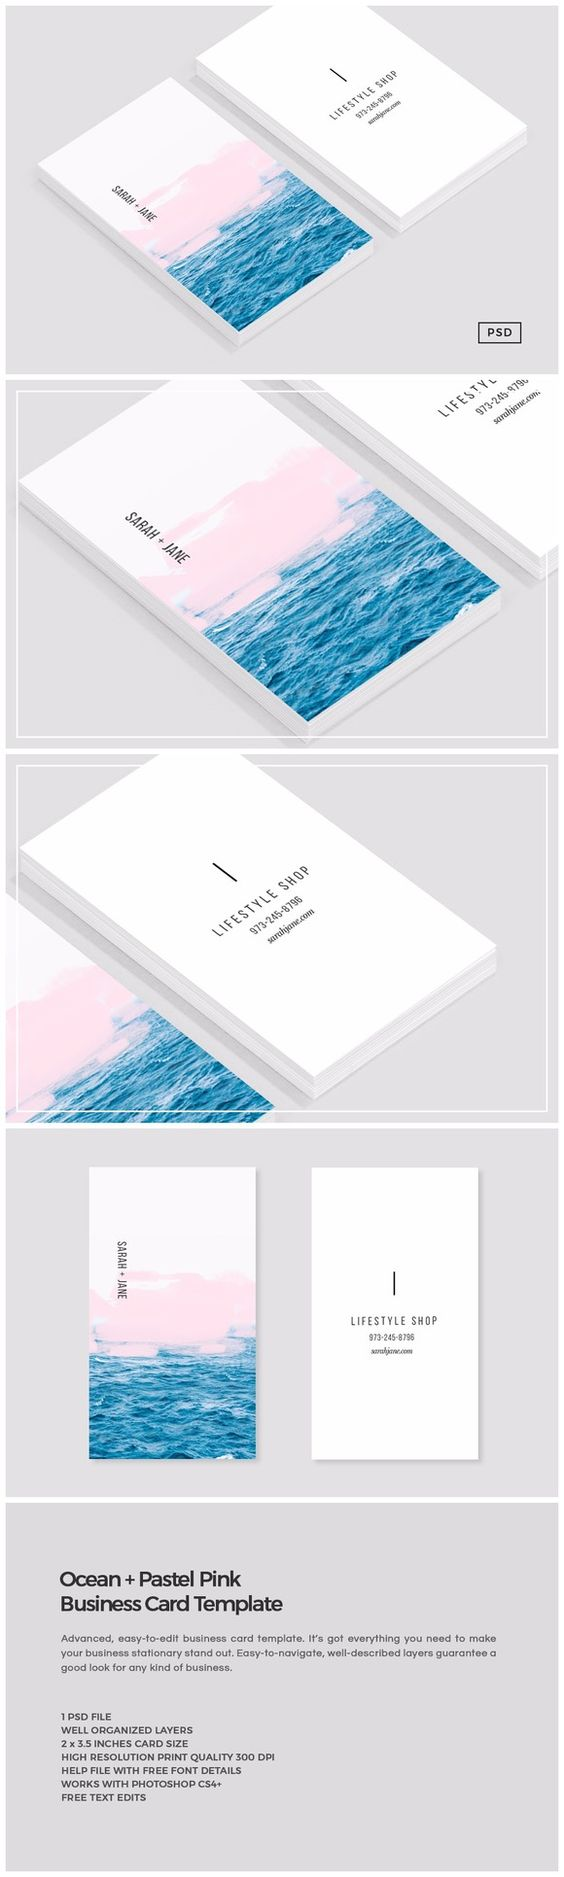 Photography calling card, premade business card, modern business ...